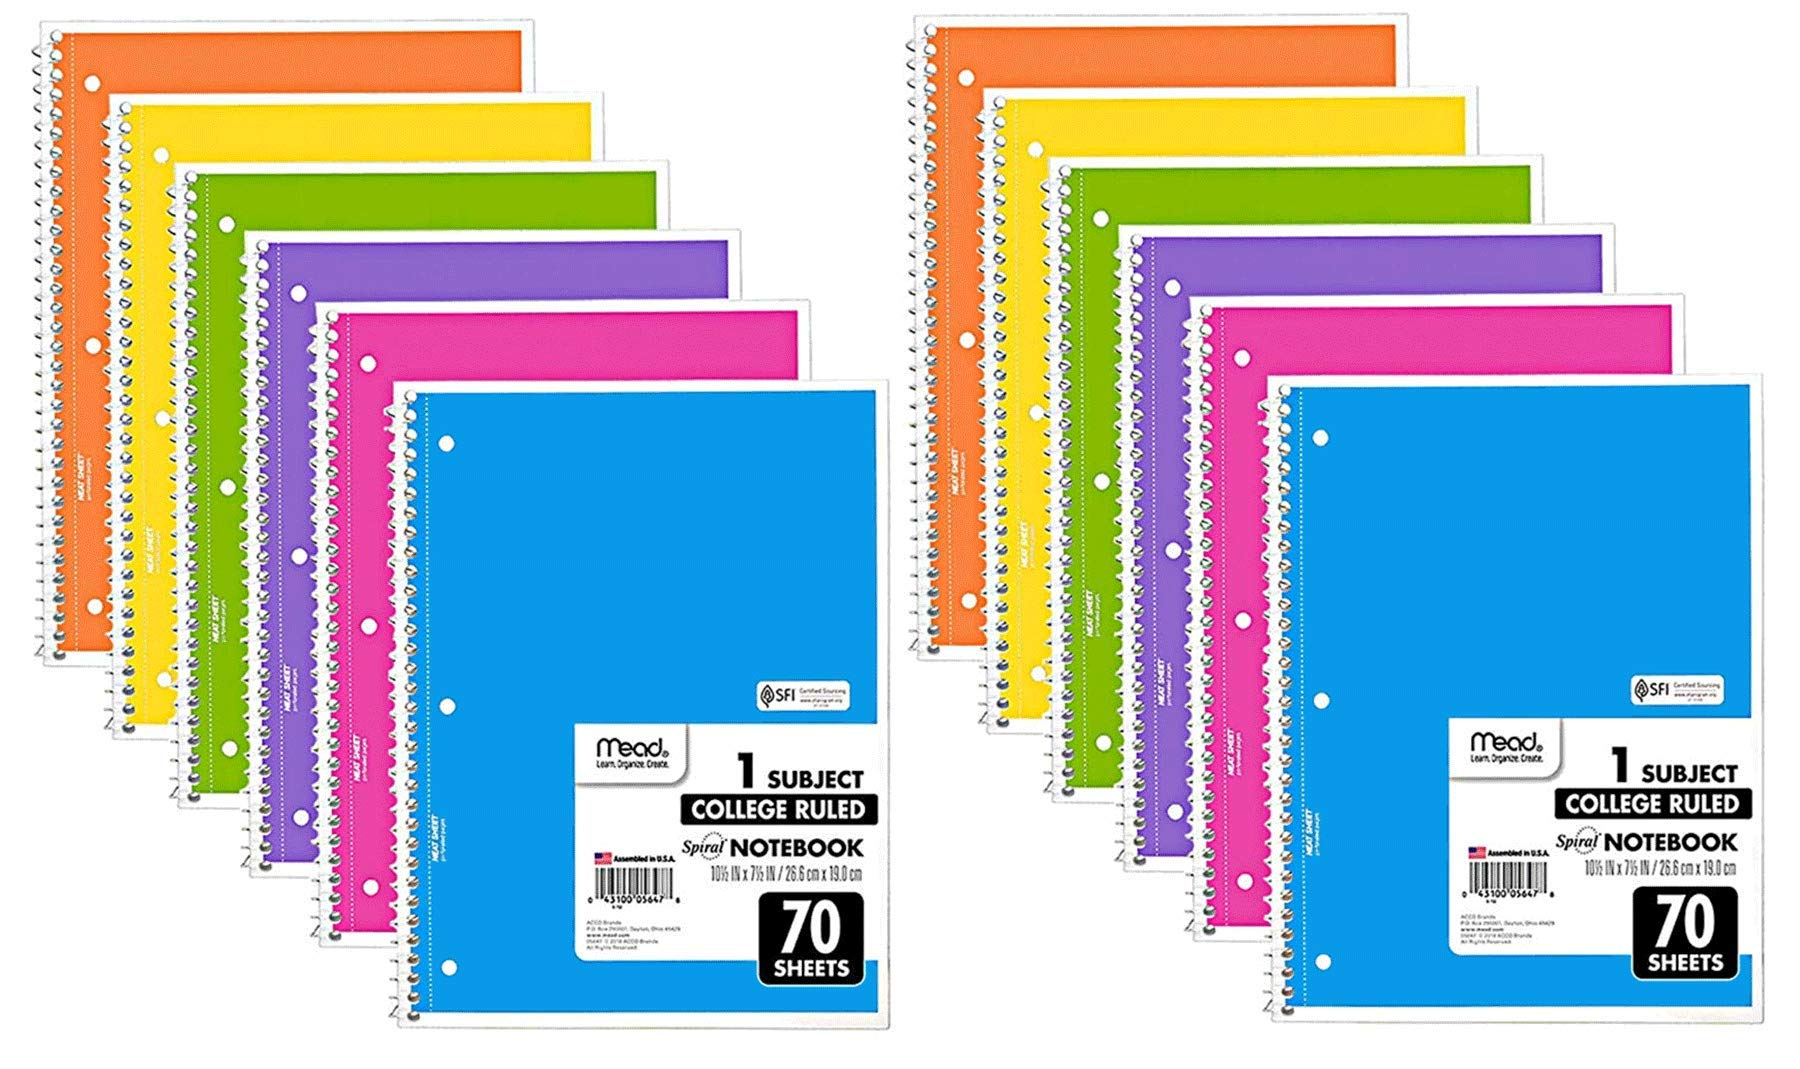 Mead Spiral Notebook, 12 Pack of 1-Subject College Ruled Spiral Bound Notebooks, Cute school Notebooks Pantone Colors, 70 Pages by Mead